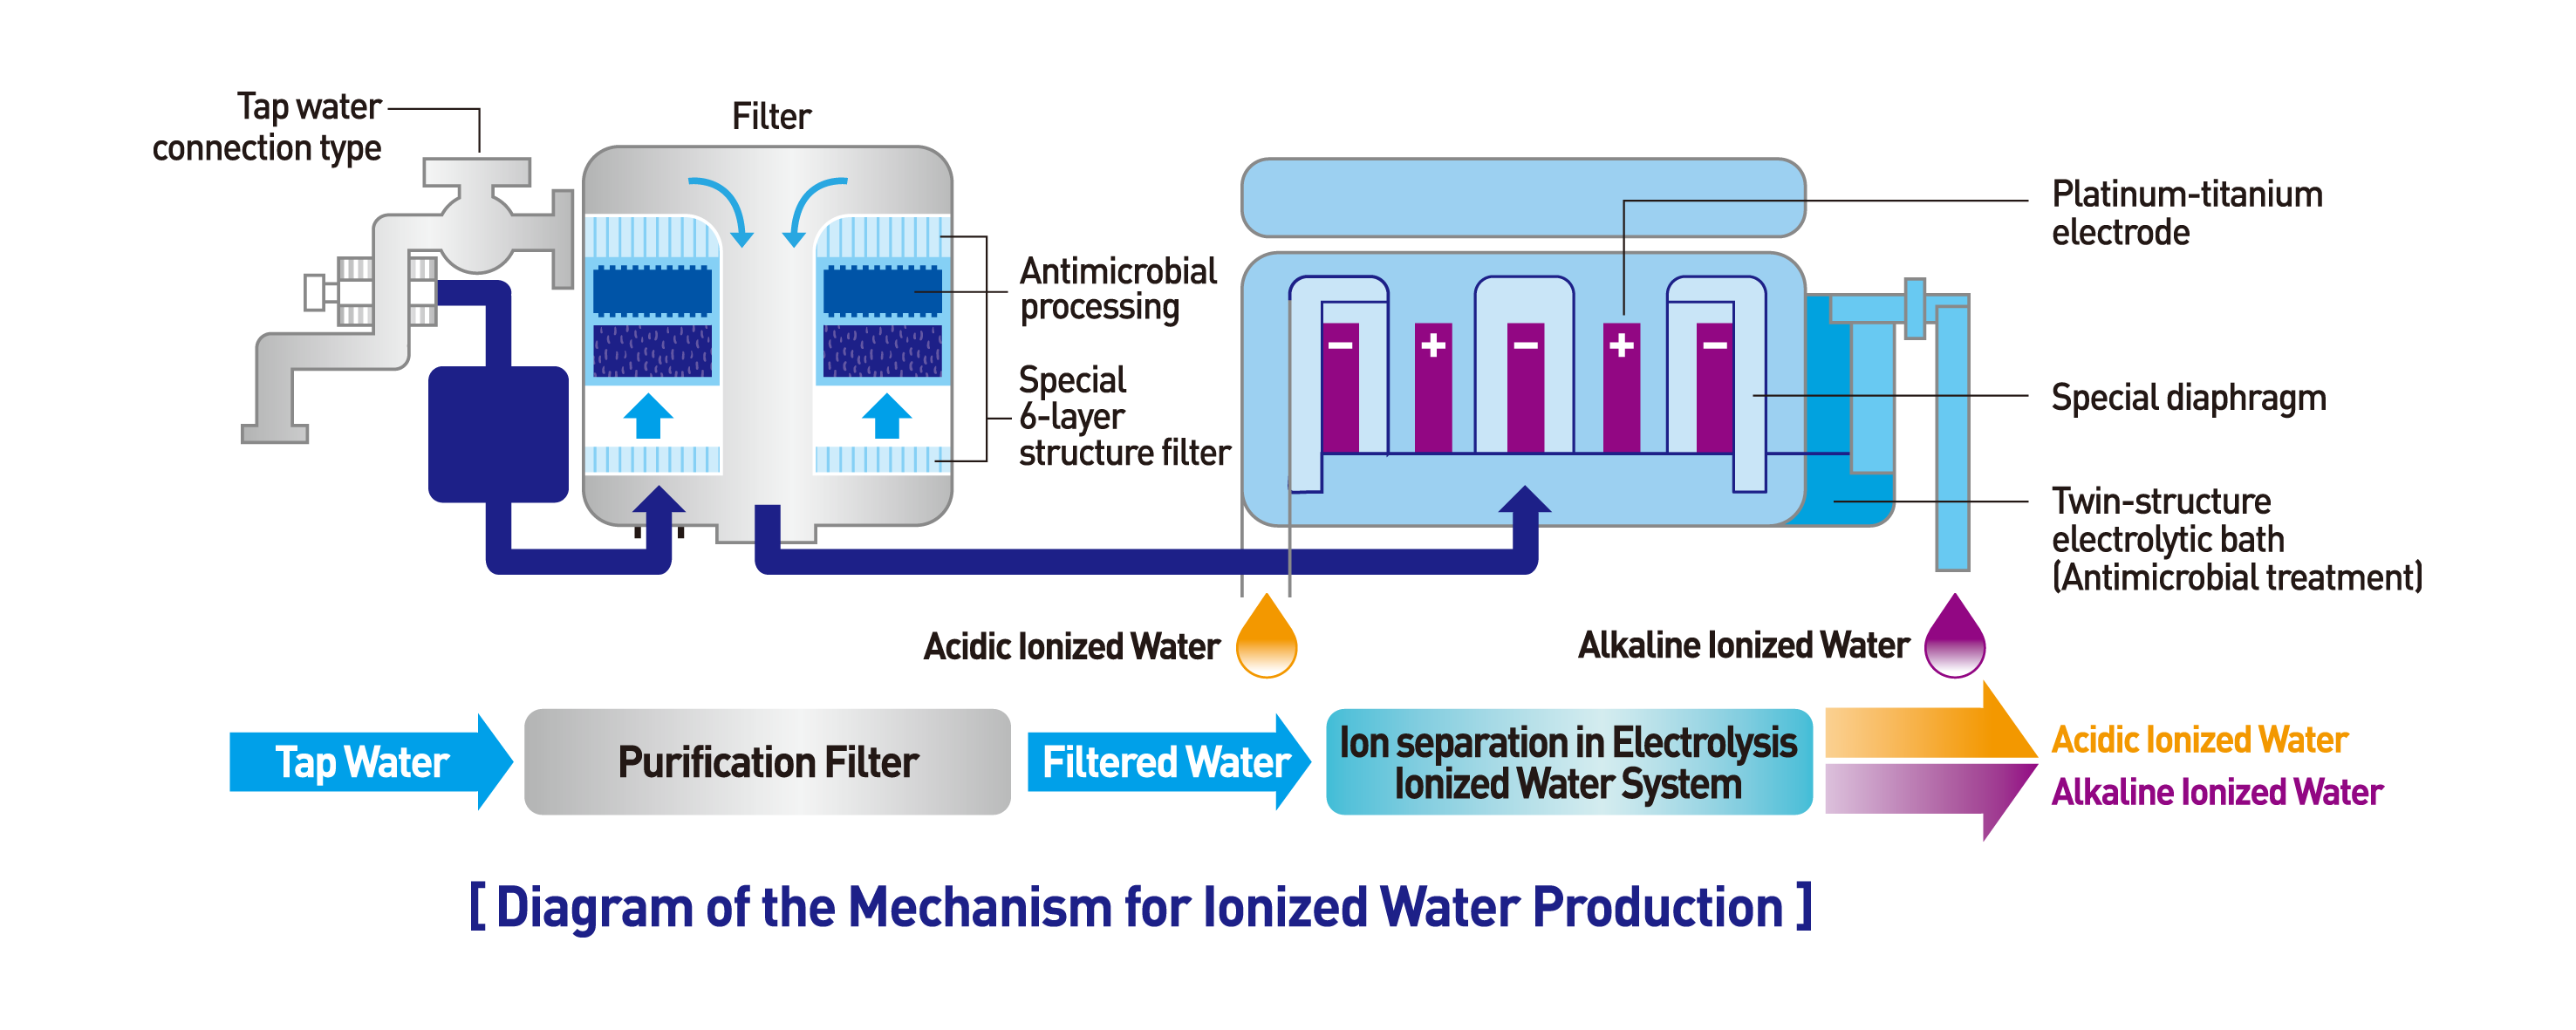 Alkal Life 7000sl Water Ionizer Filtration Diagram Features